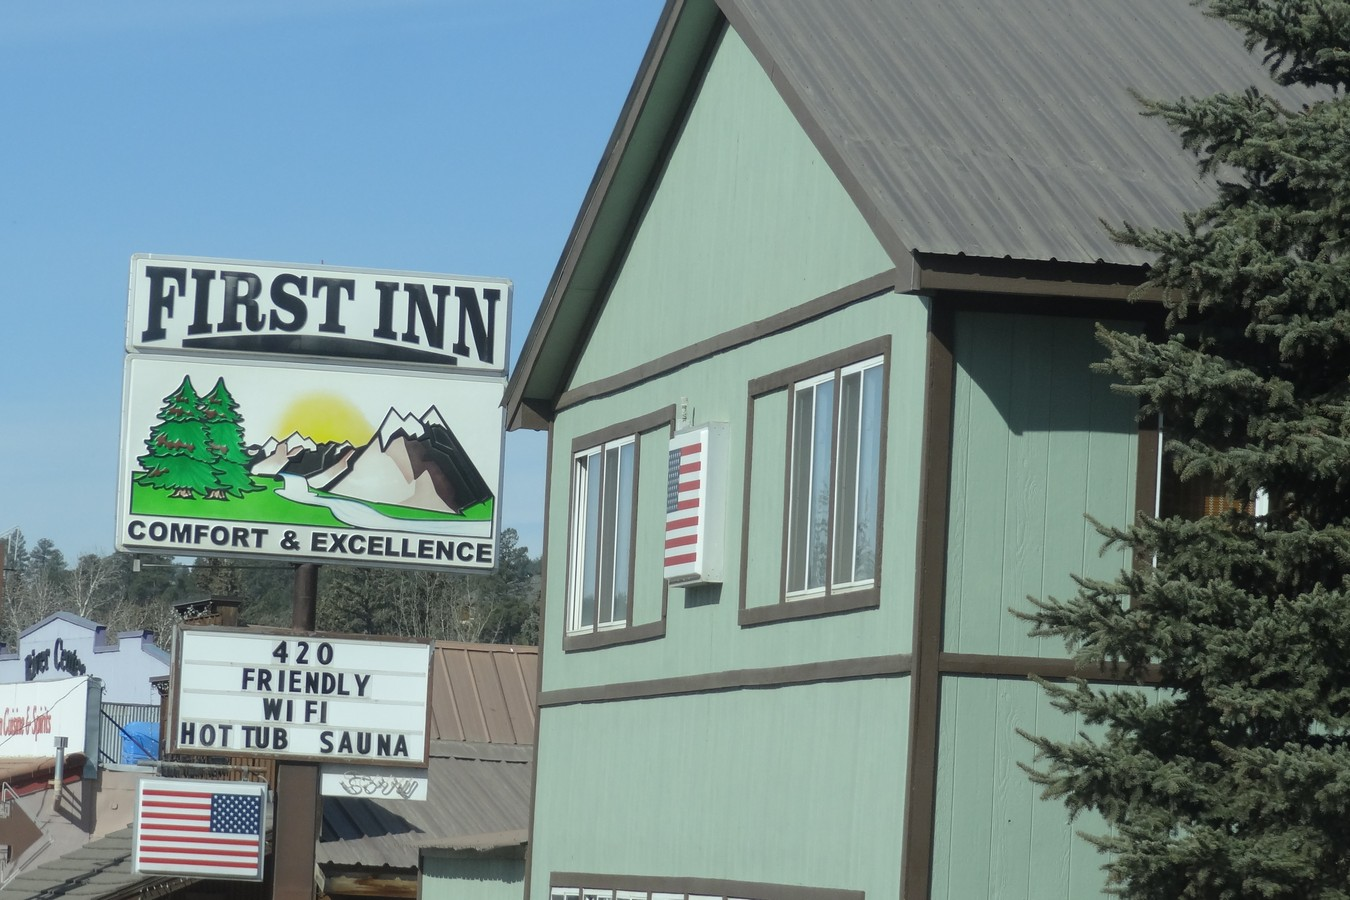 First Inn of Pagosa Springs